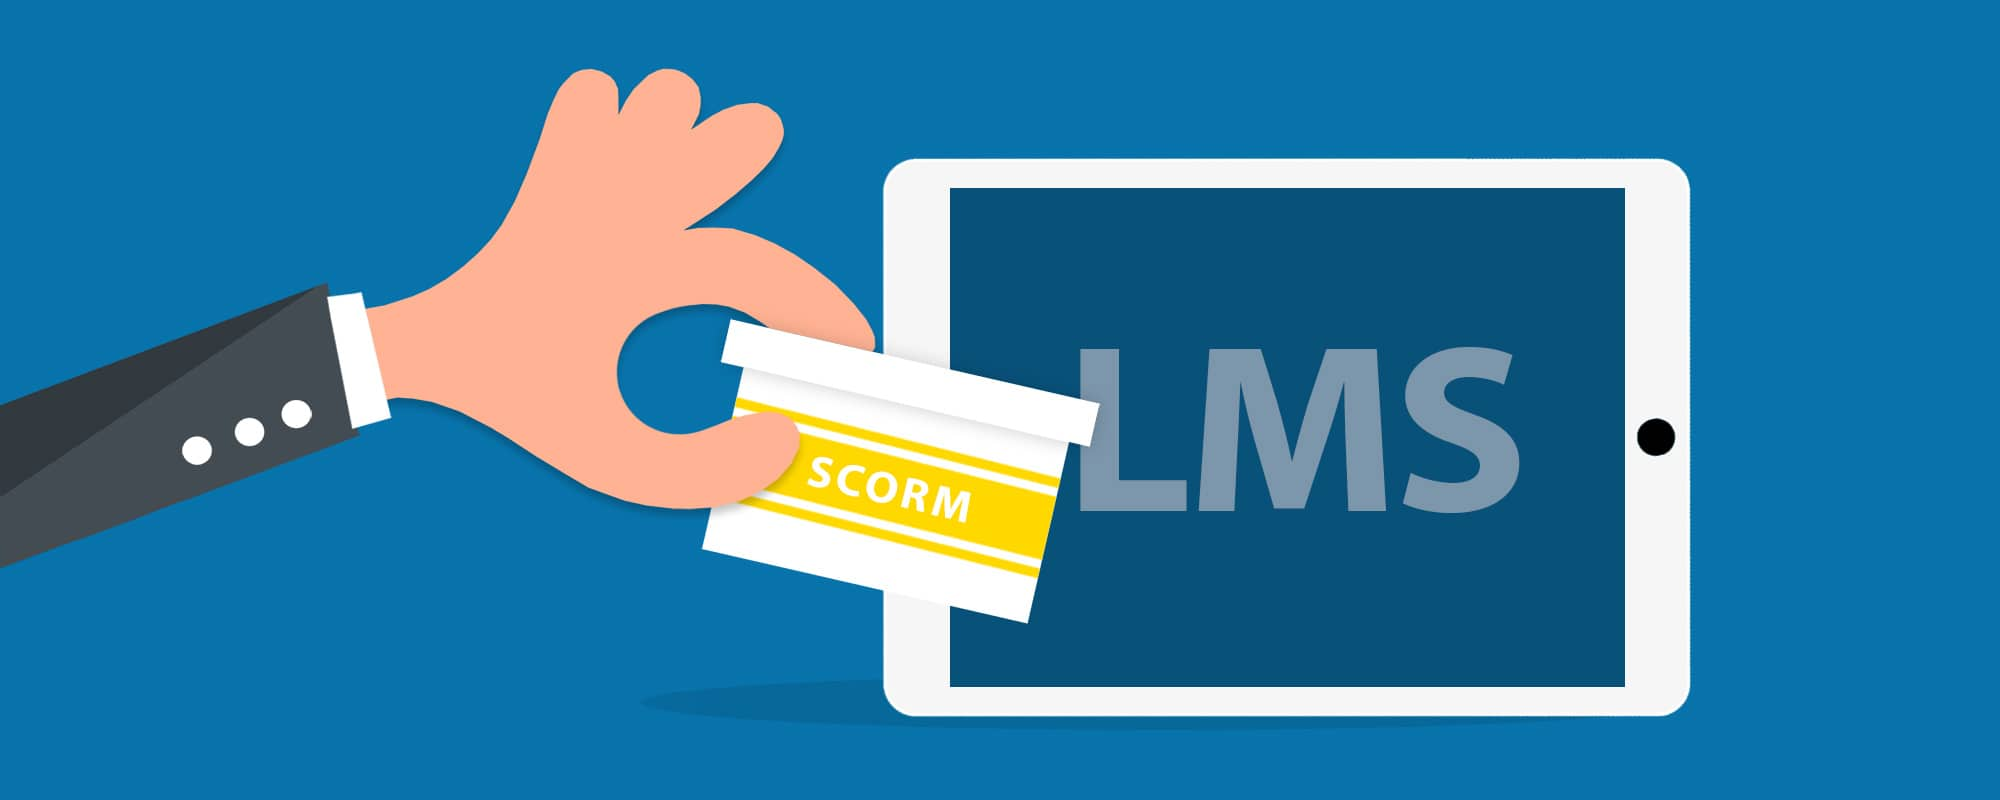 How Important is SCORM in e-Learning?